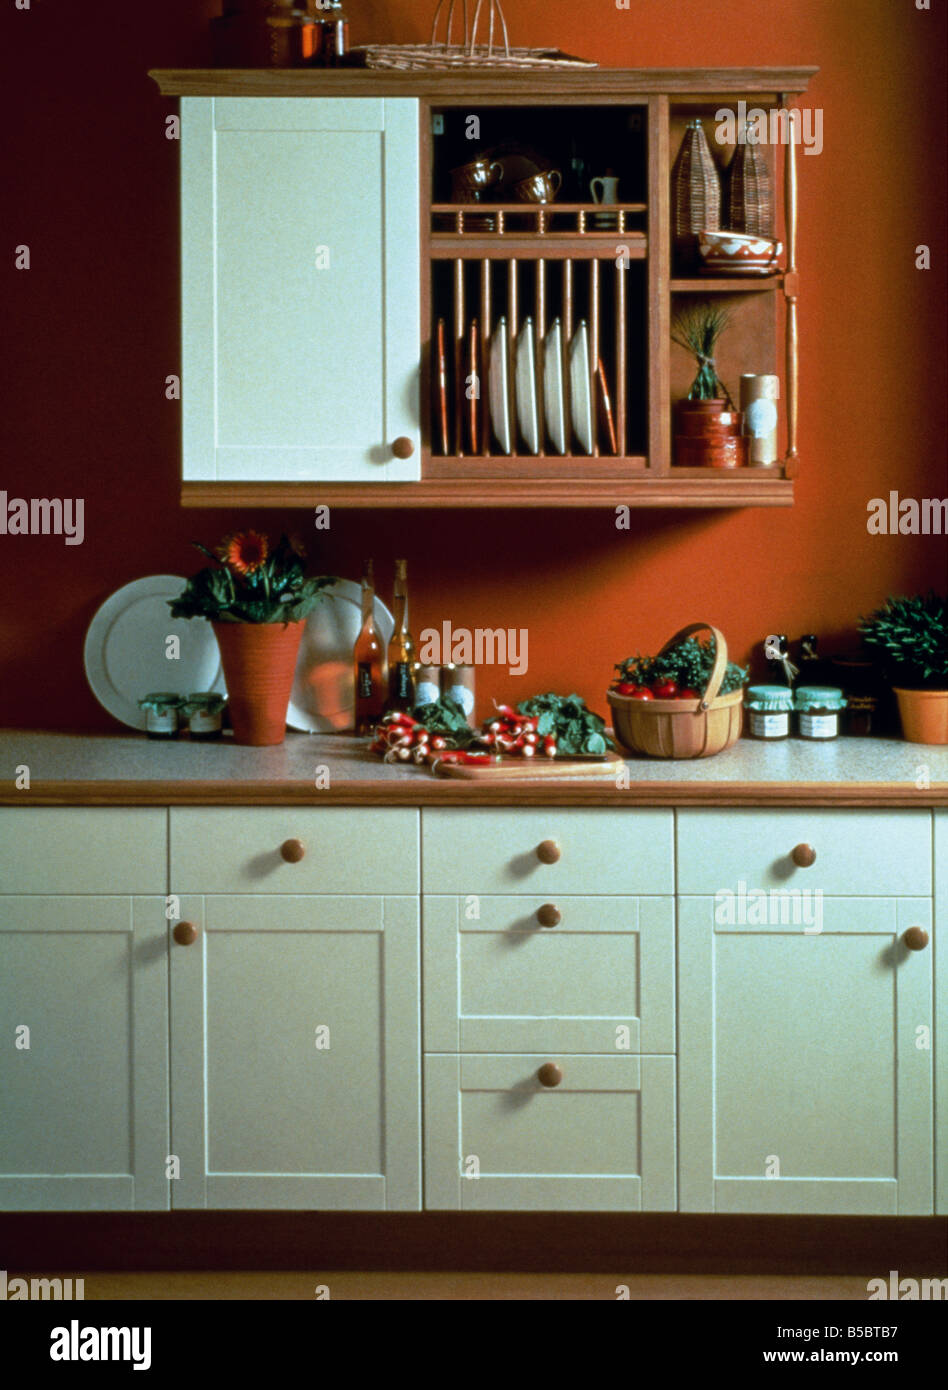 plate rack and wooden shelves on wall unit in red kitchen with